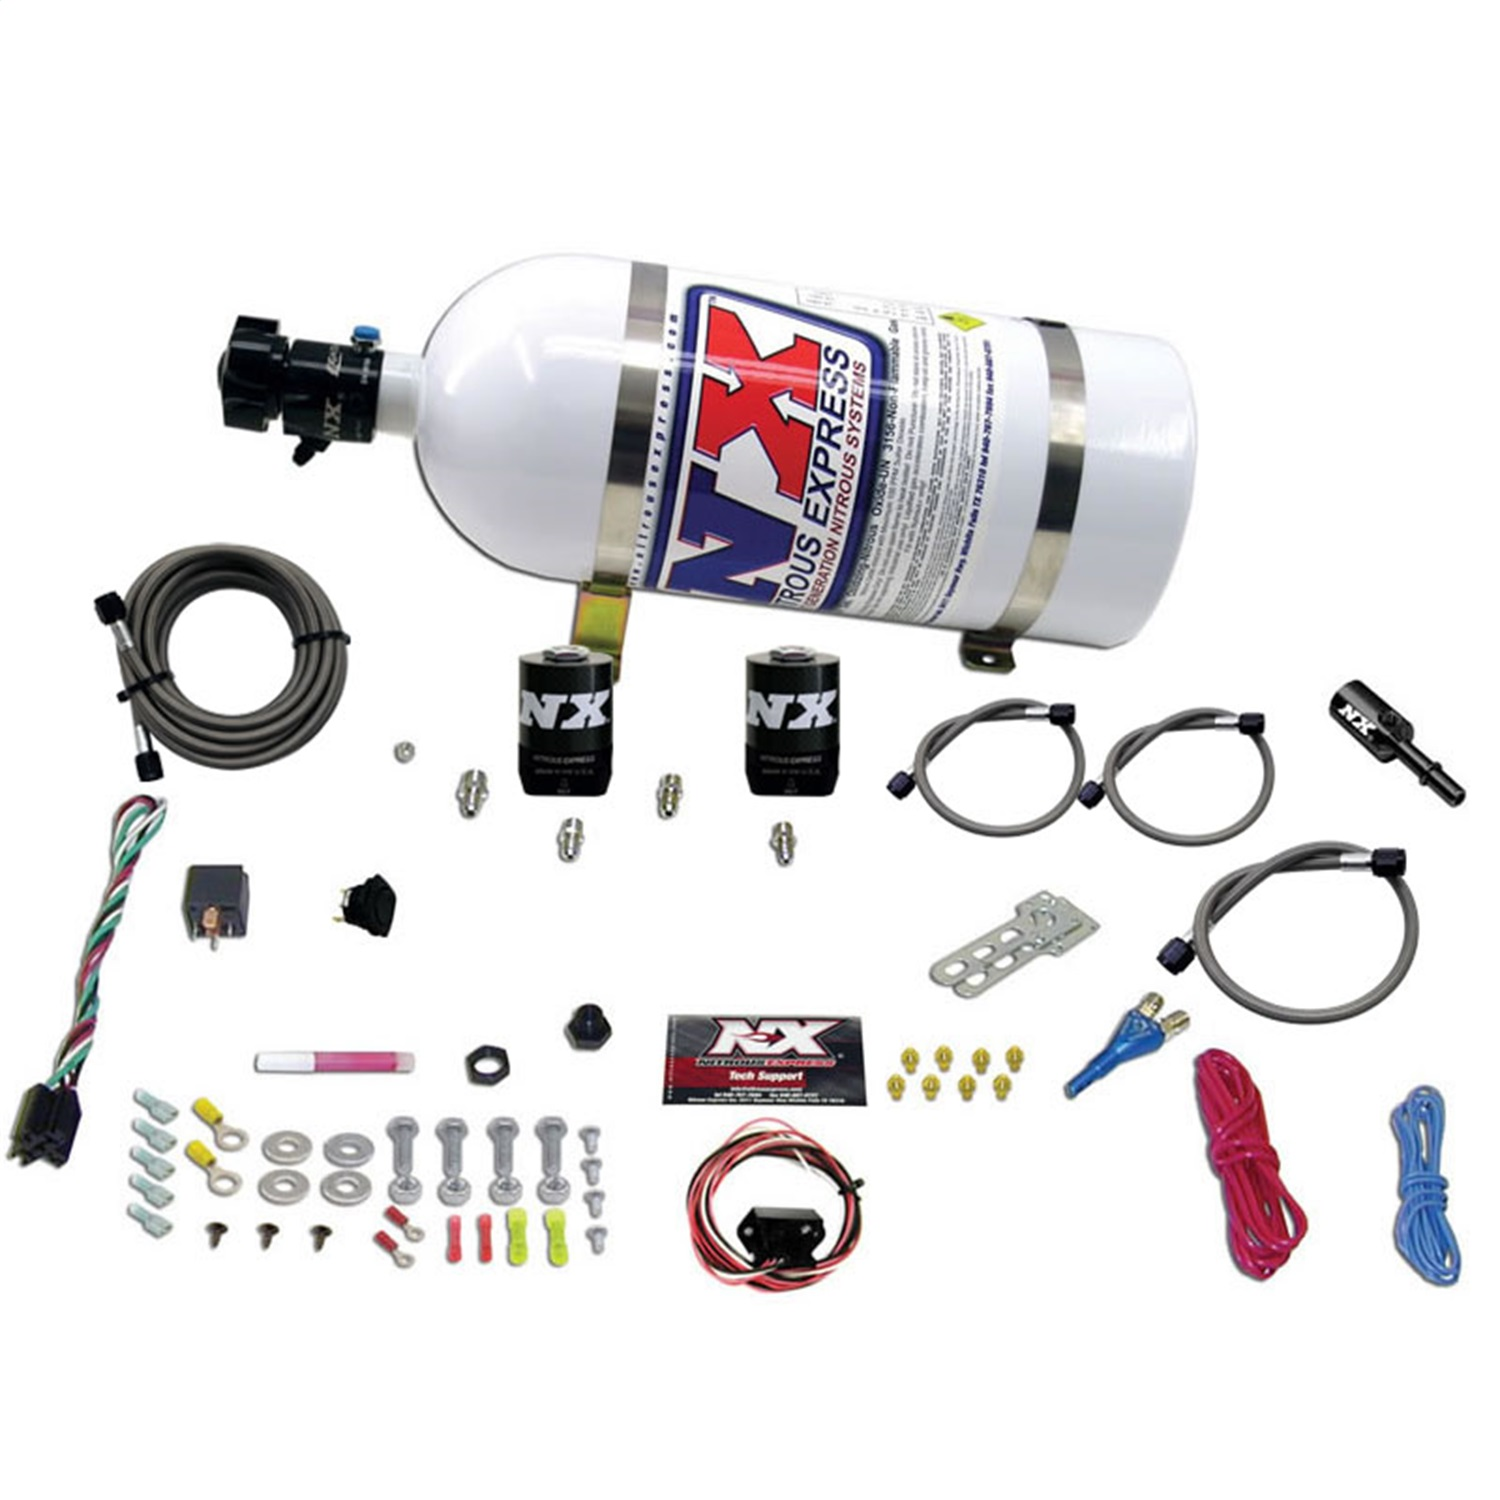 nitrous-express-20932-10-ford-coyote-single-nozzle-nitrous-system-fits-mustang